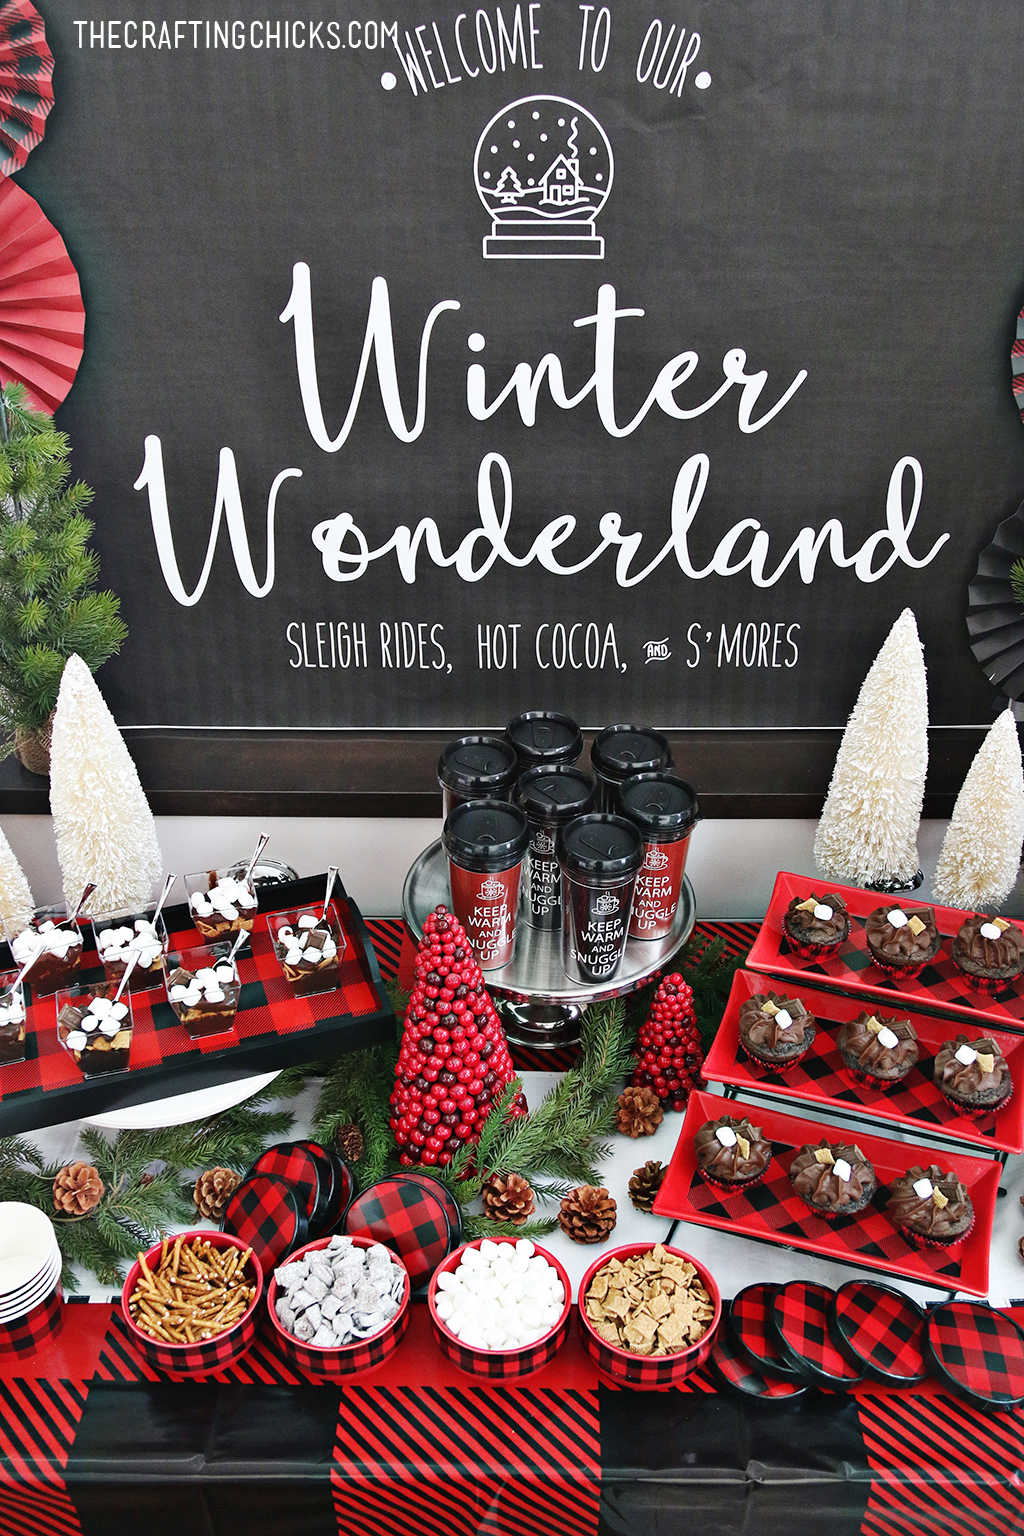 Add this Winter Wonderland Backdrop Printable to any winter party you throw. This large format printable is beautiful and will make the party table stand out.